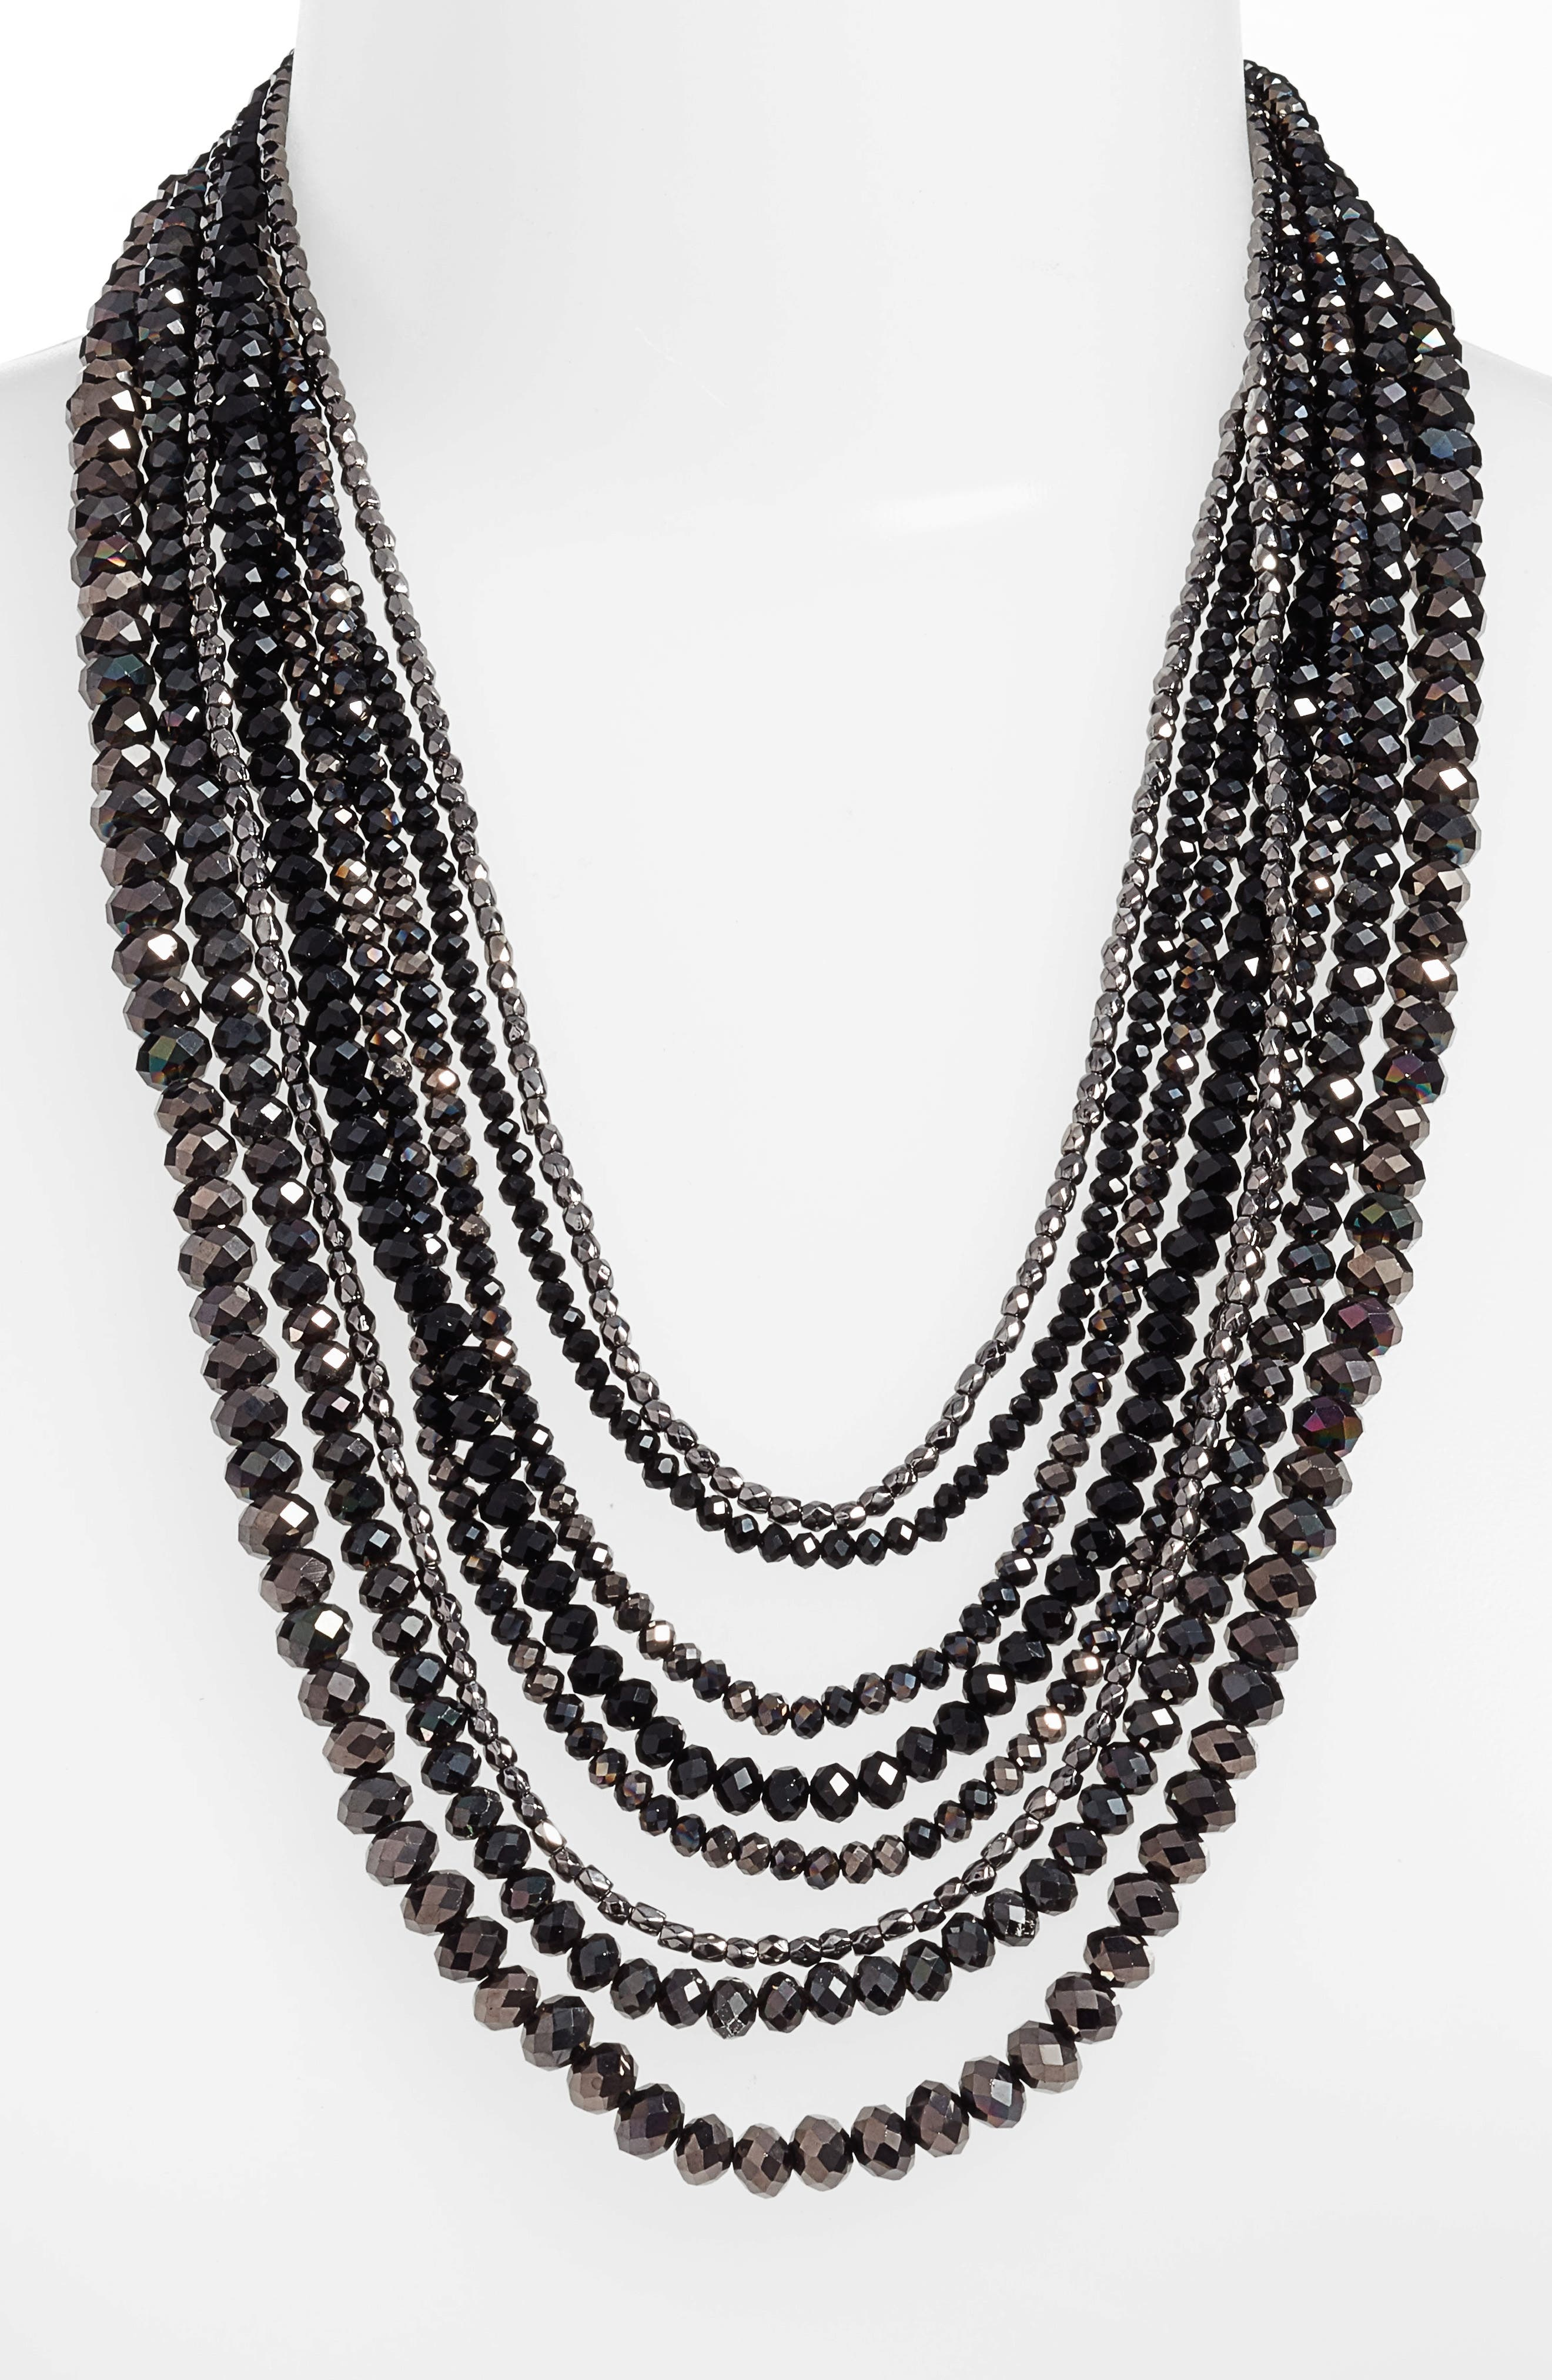 CRISTABELLE Multistrand Beaded Necklace